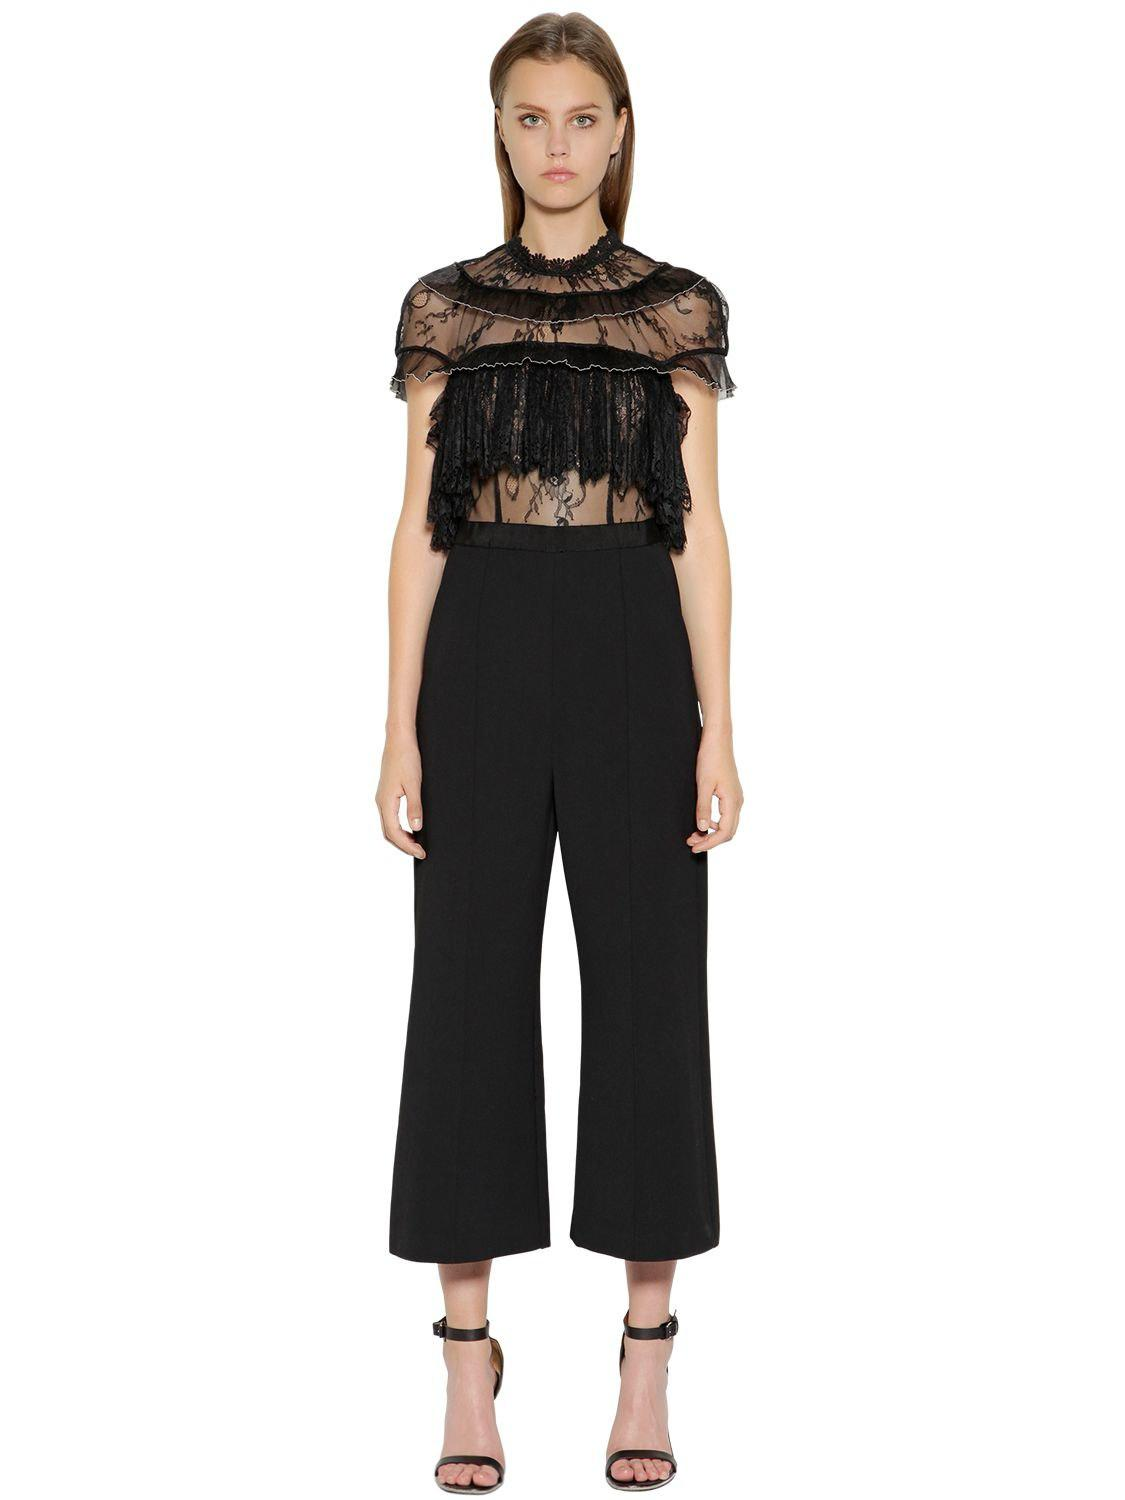 Cropped Ruffled Guipure Lace And Crepe Jumpsuit - Black Self Portrait oESPpIVUx8